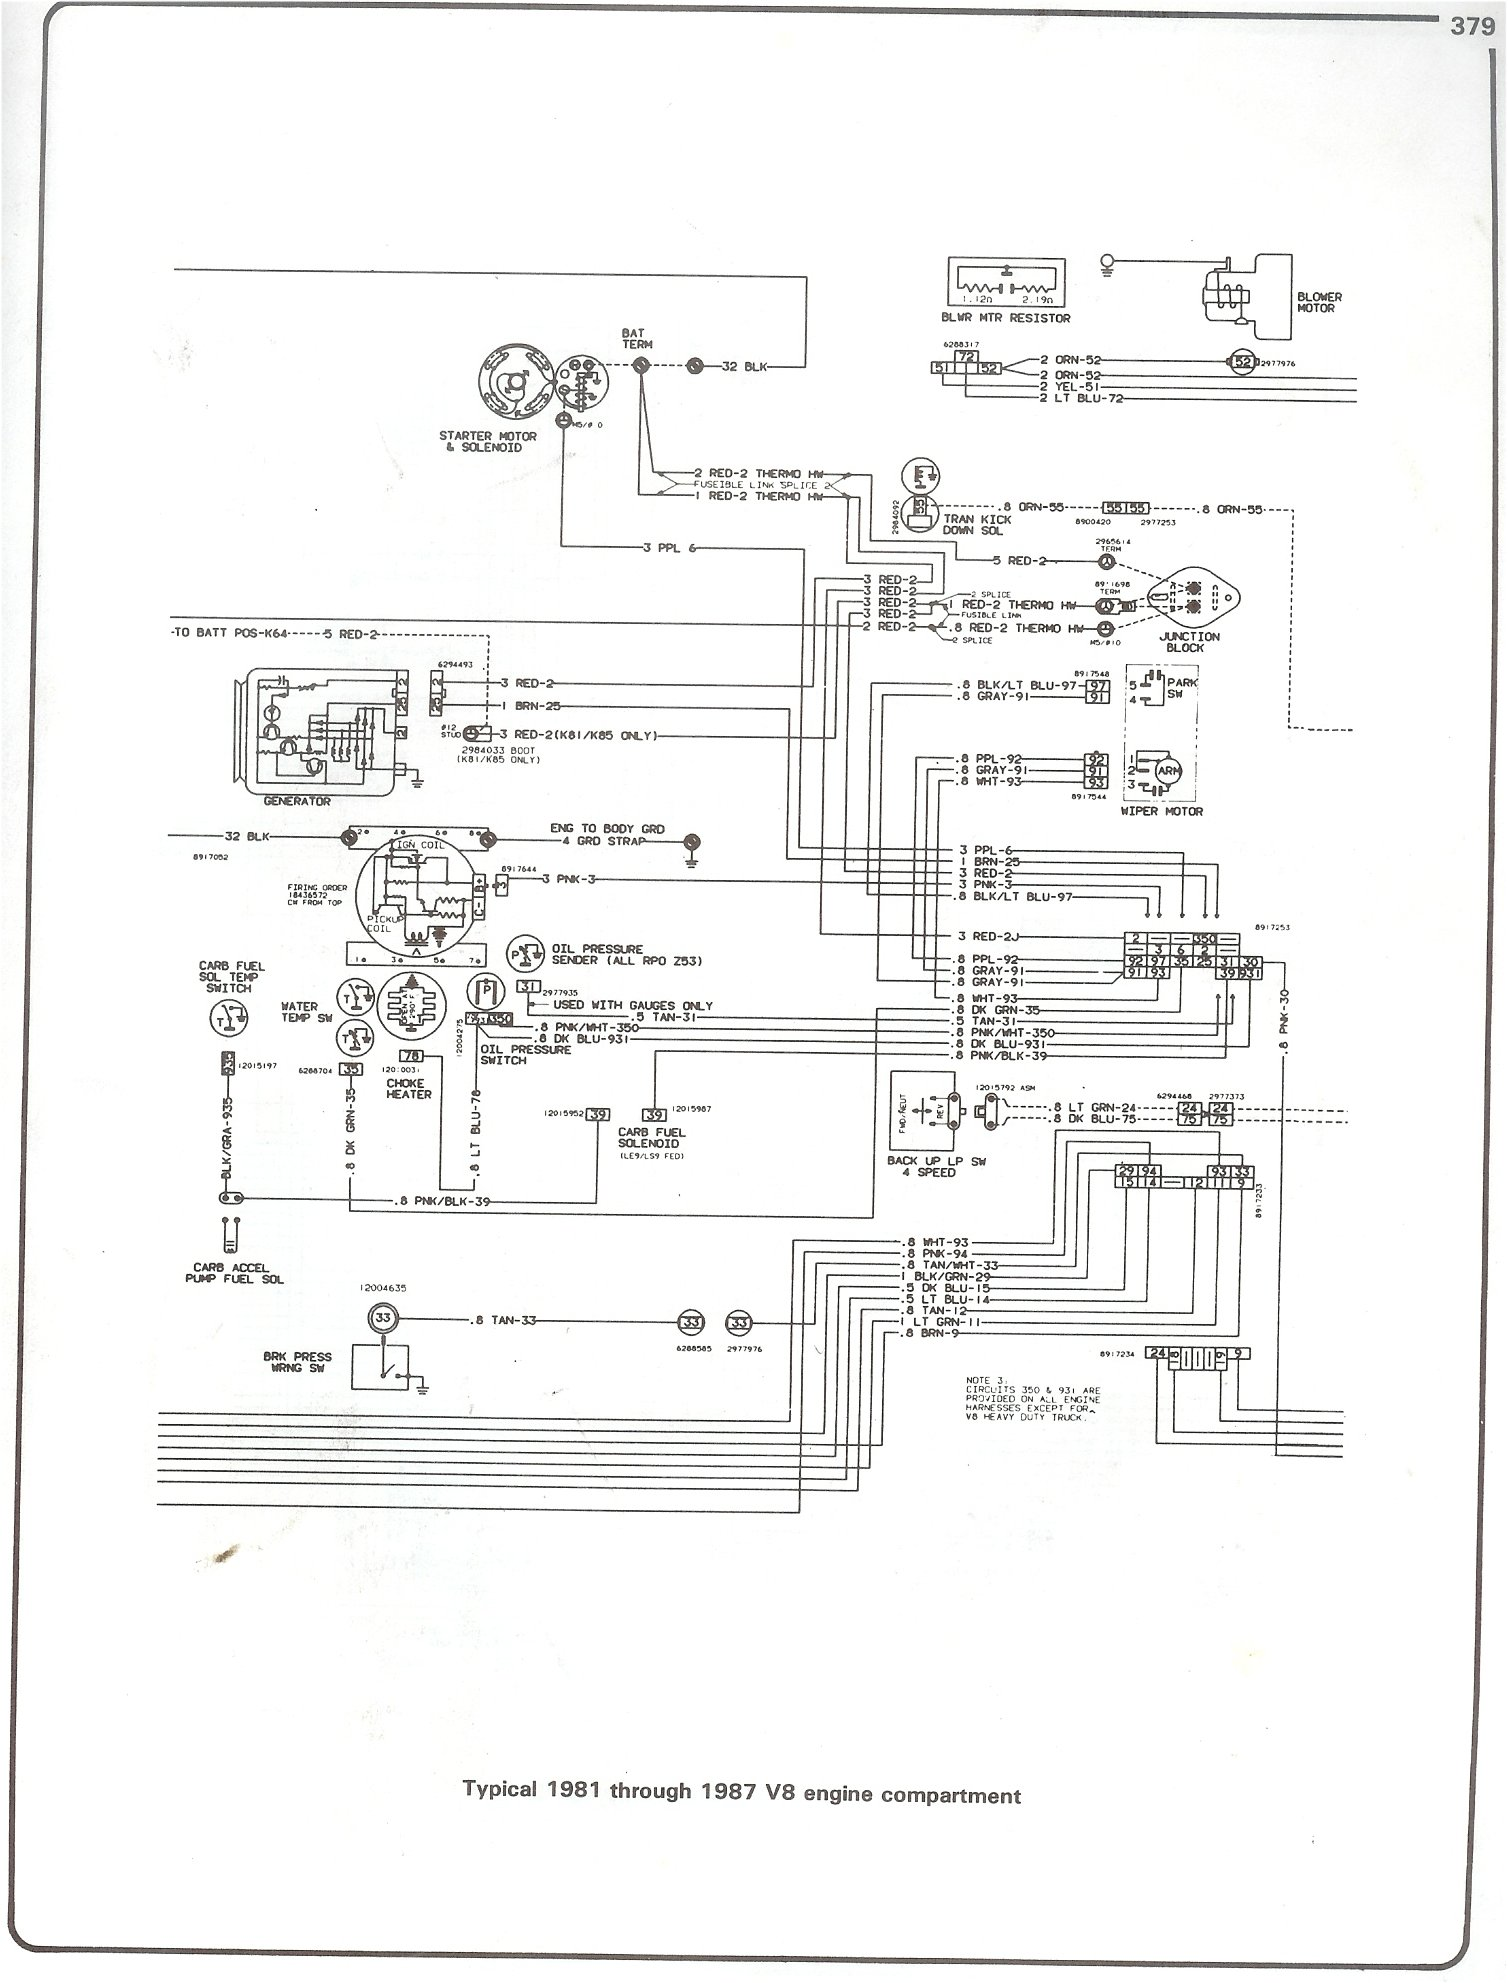 81 87_V8_engine complete 73 87 wiring diagrams chevy truck wiring diagram at eliteediting.co